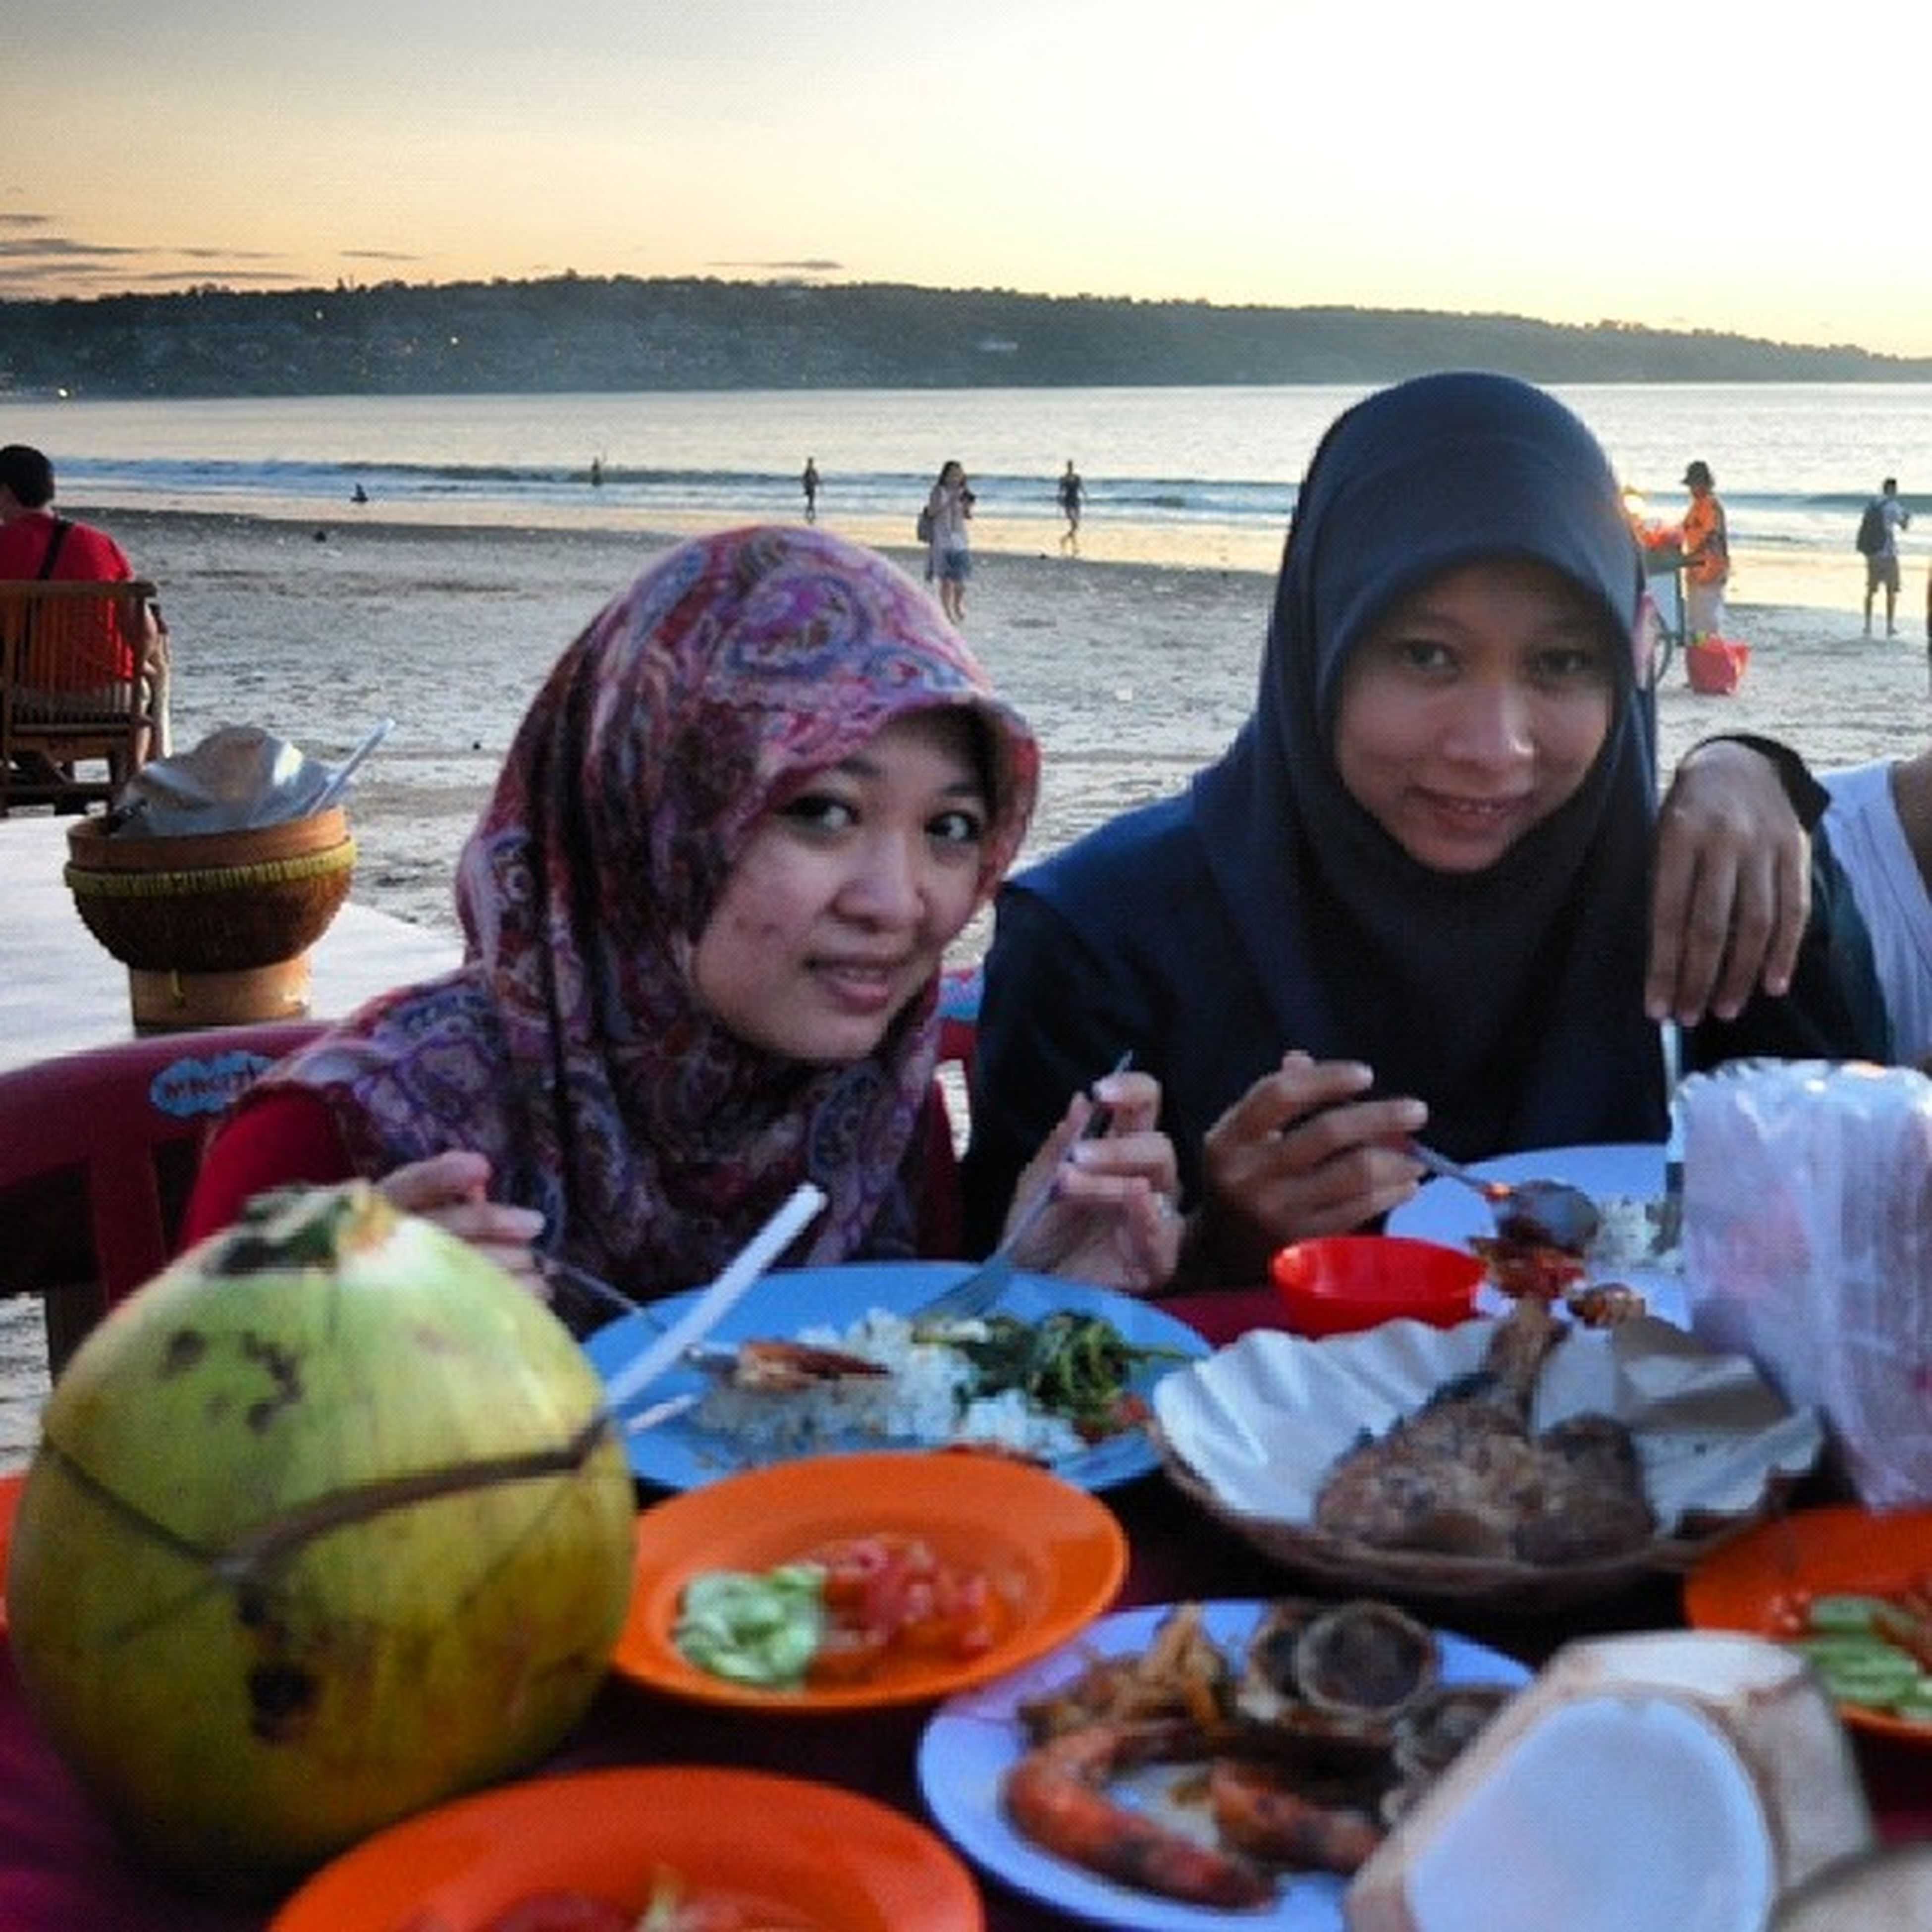 lifestyles, food and drink, leisure activity, person, portrait, happiness, looking at camera, food, smiling, togetherness, front view, casual clothing, enjoyment, bonding, sea, water, young adult